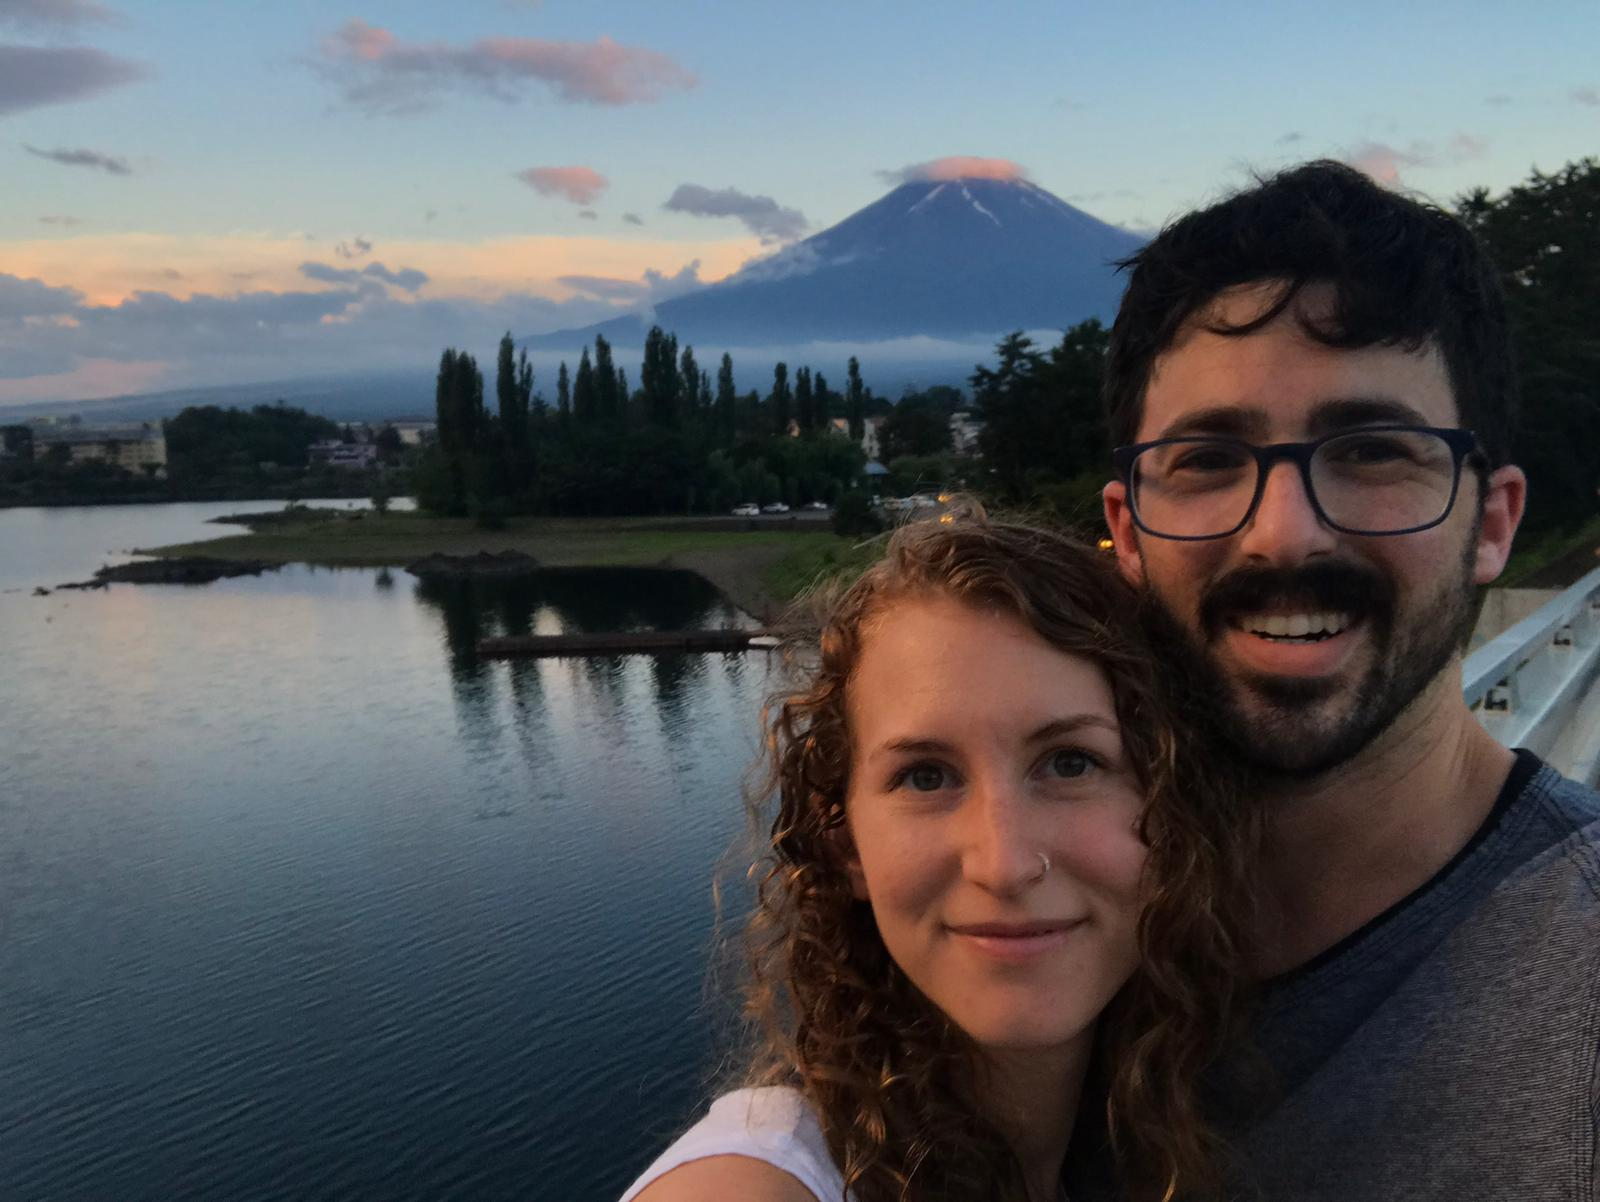 Portrait of couple with Mt Fuji in the background.